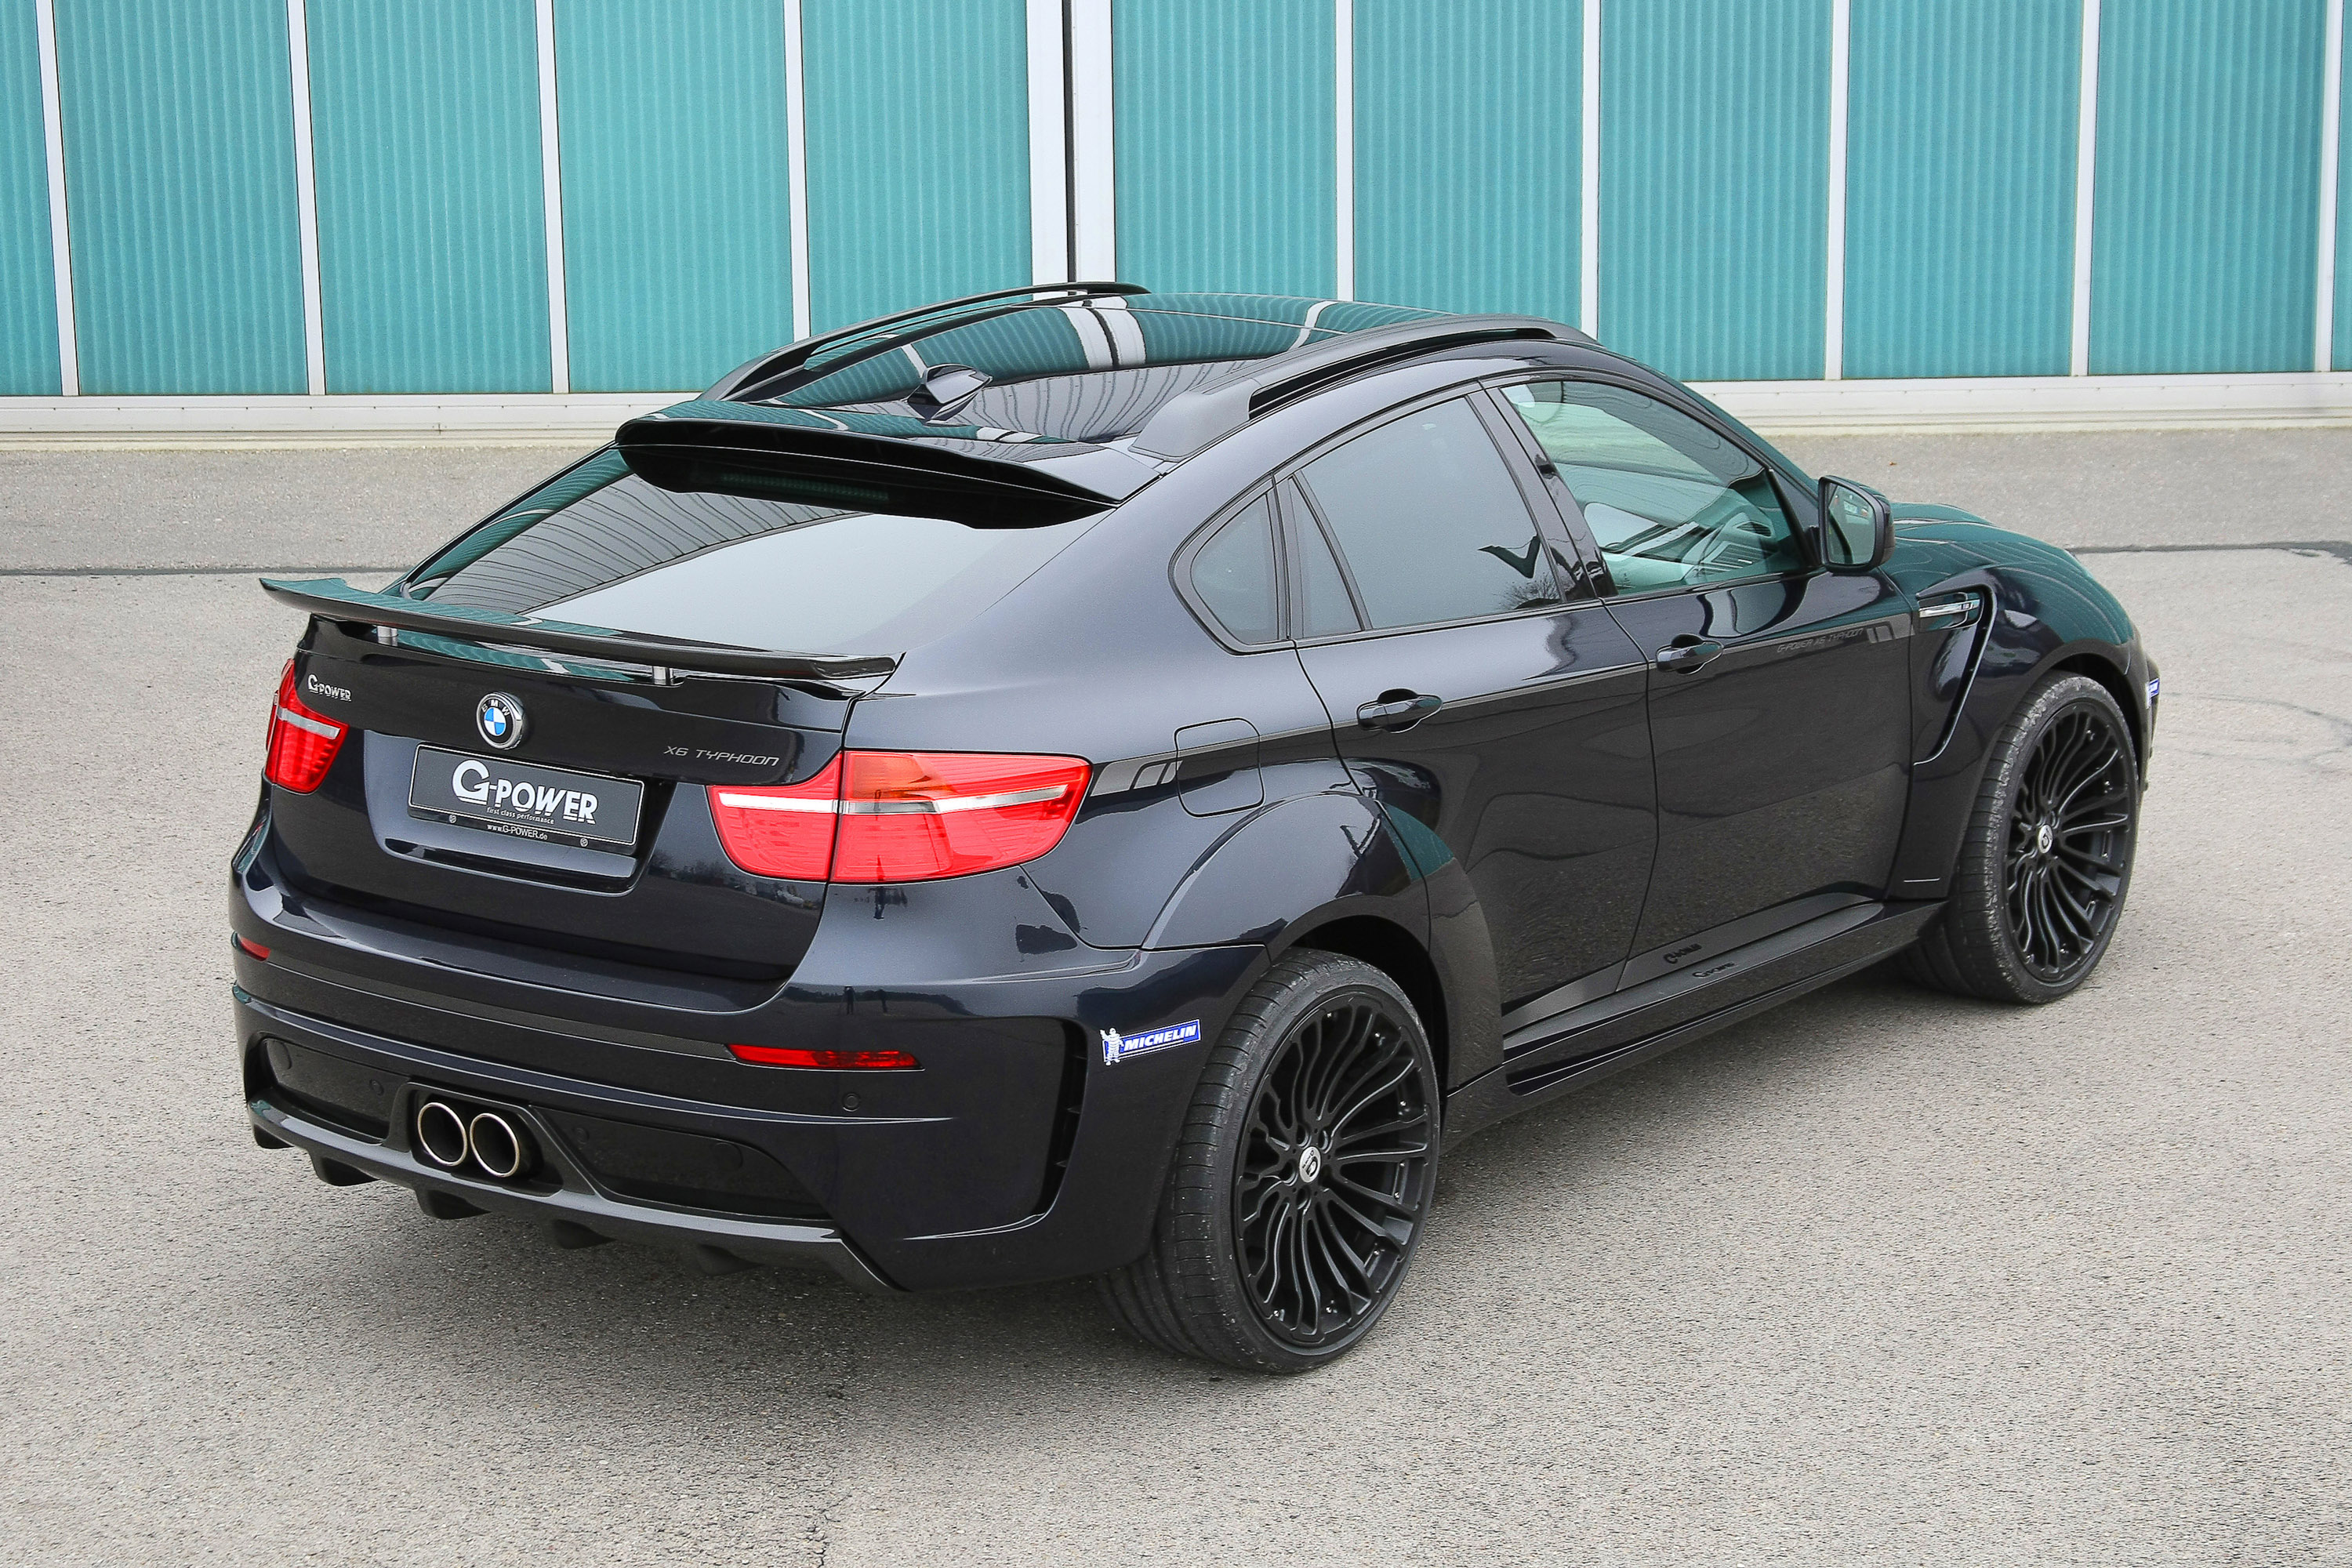 G Power Bmw X6 M Typhoon Wide Body Picture 61510